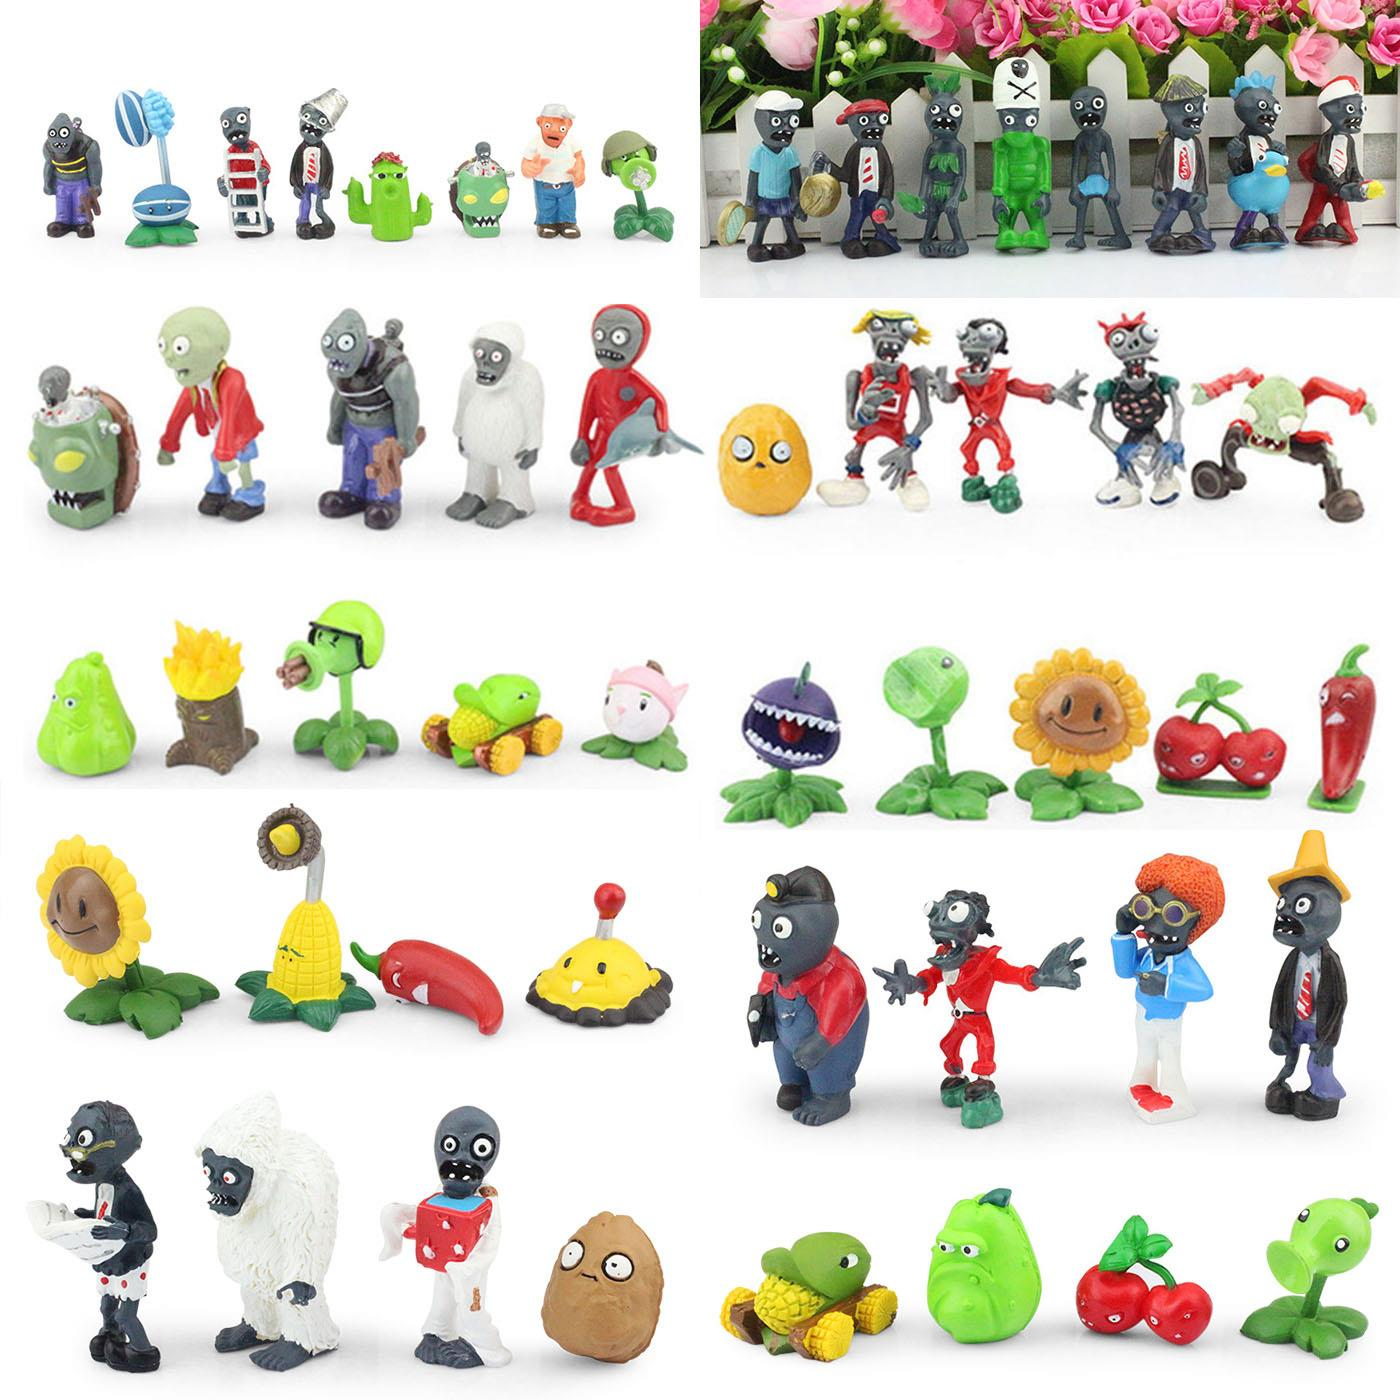 52pcs/set Plants VS Zombies PVZ Collection Figures Toy all the Plants and zombies figure Toys Free Shipping 6pcs plants vs zombies plush toys 30cm plush game toy for children birthday gift